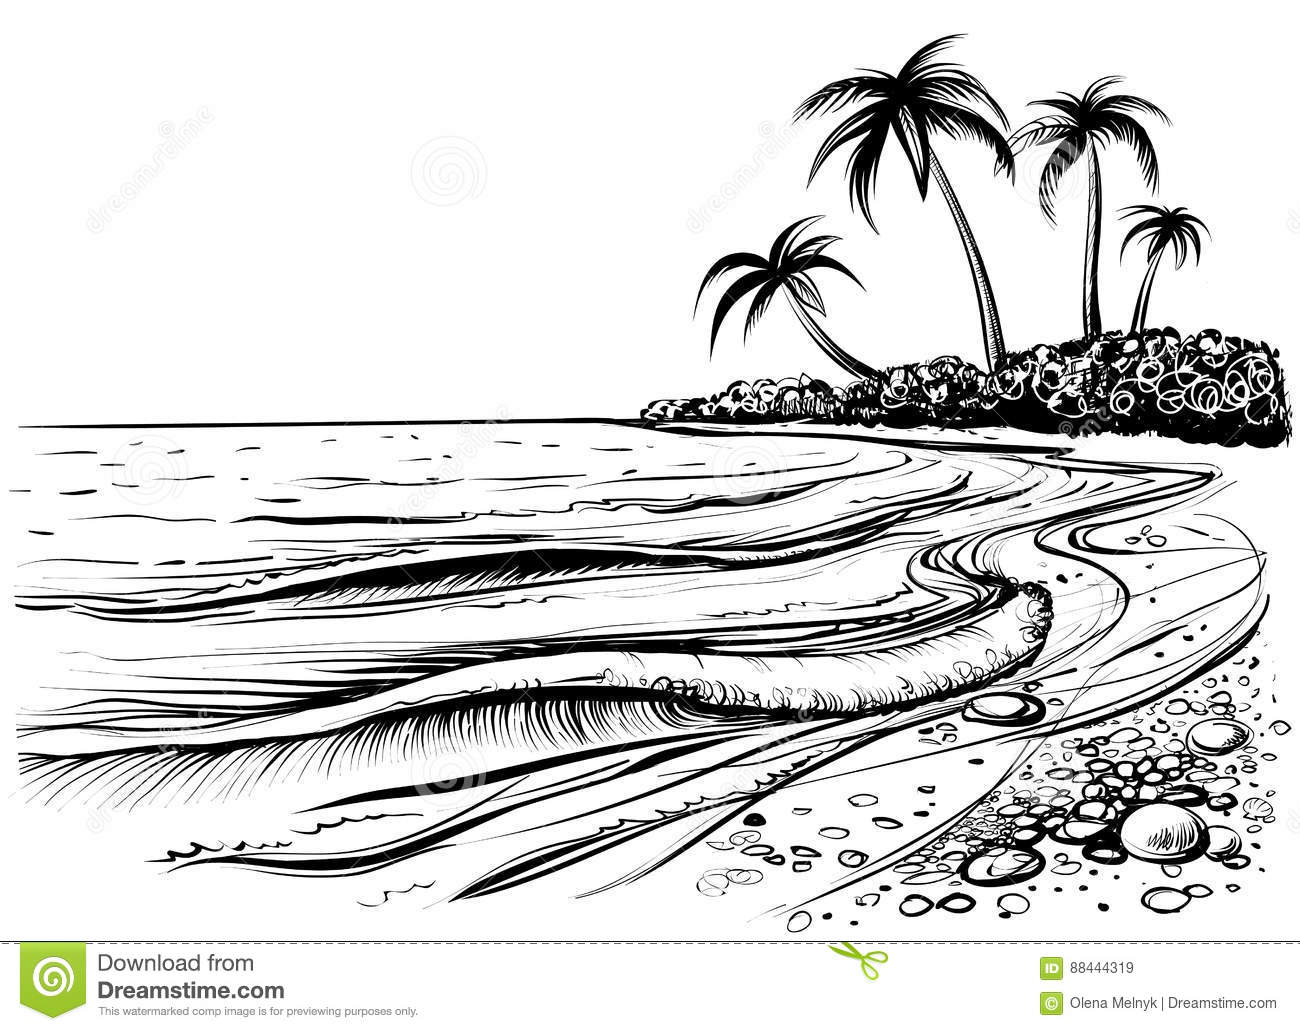 Ocean Or Sea Beach With Palms And Waves, Sketch  Black And White